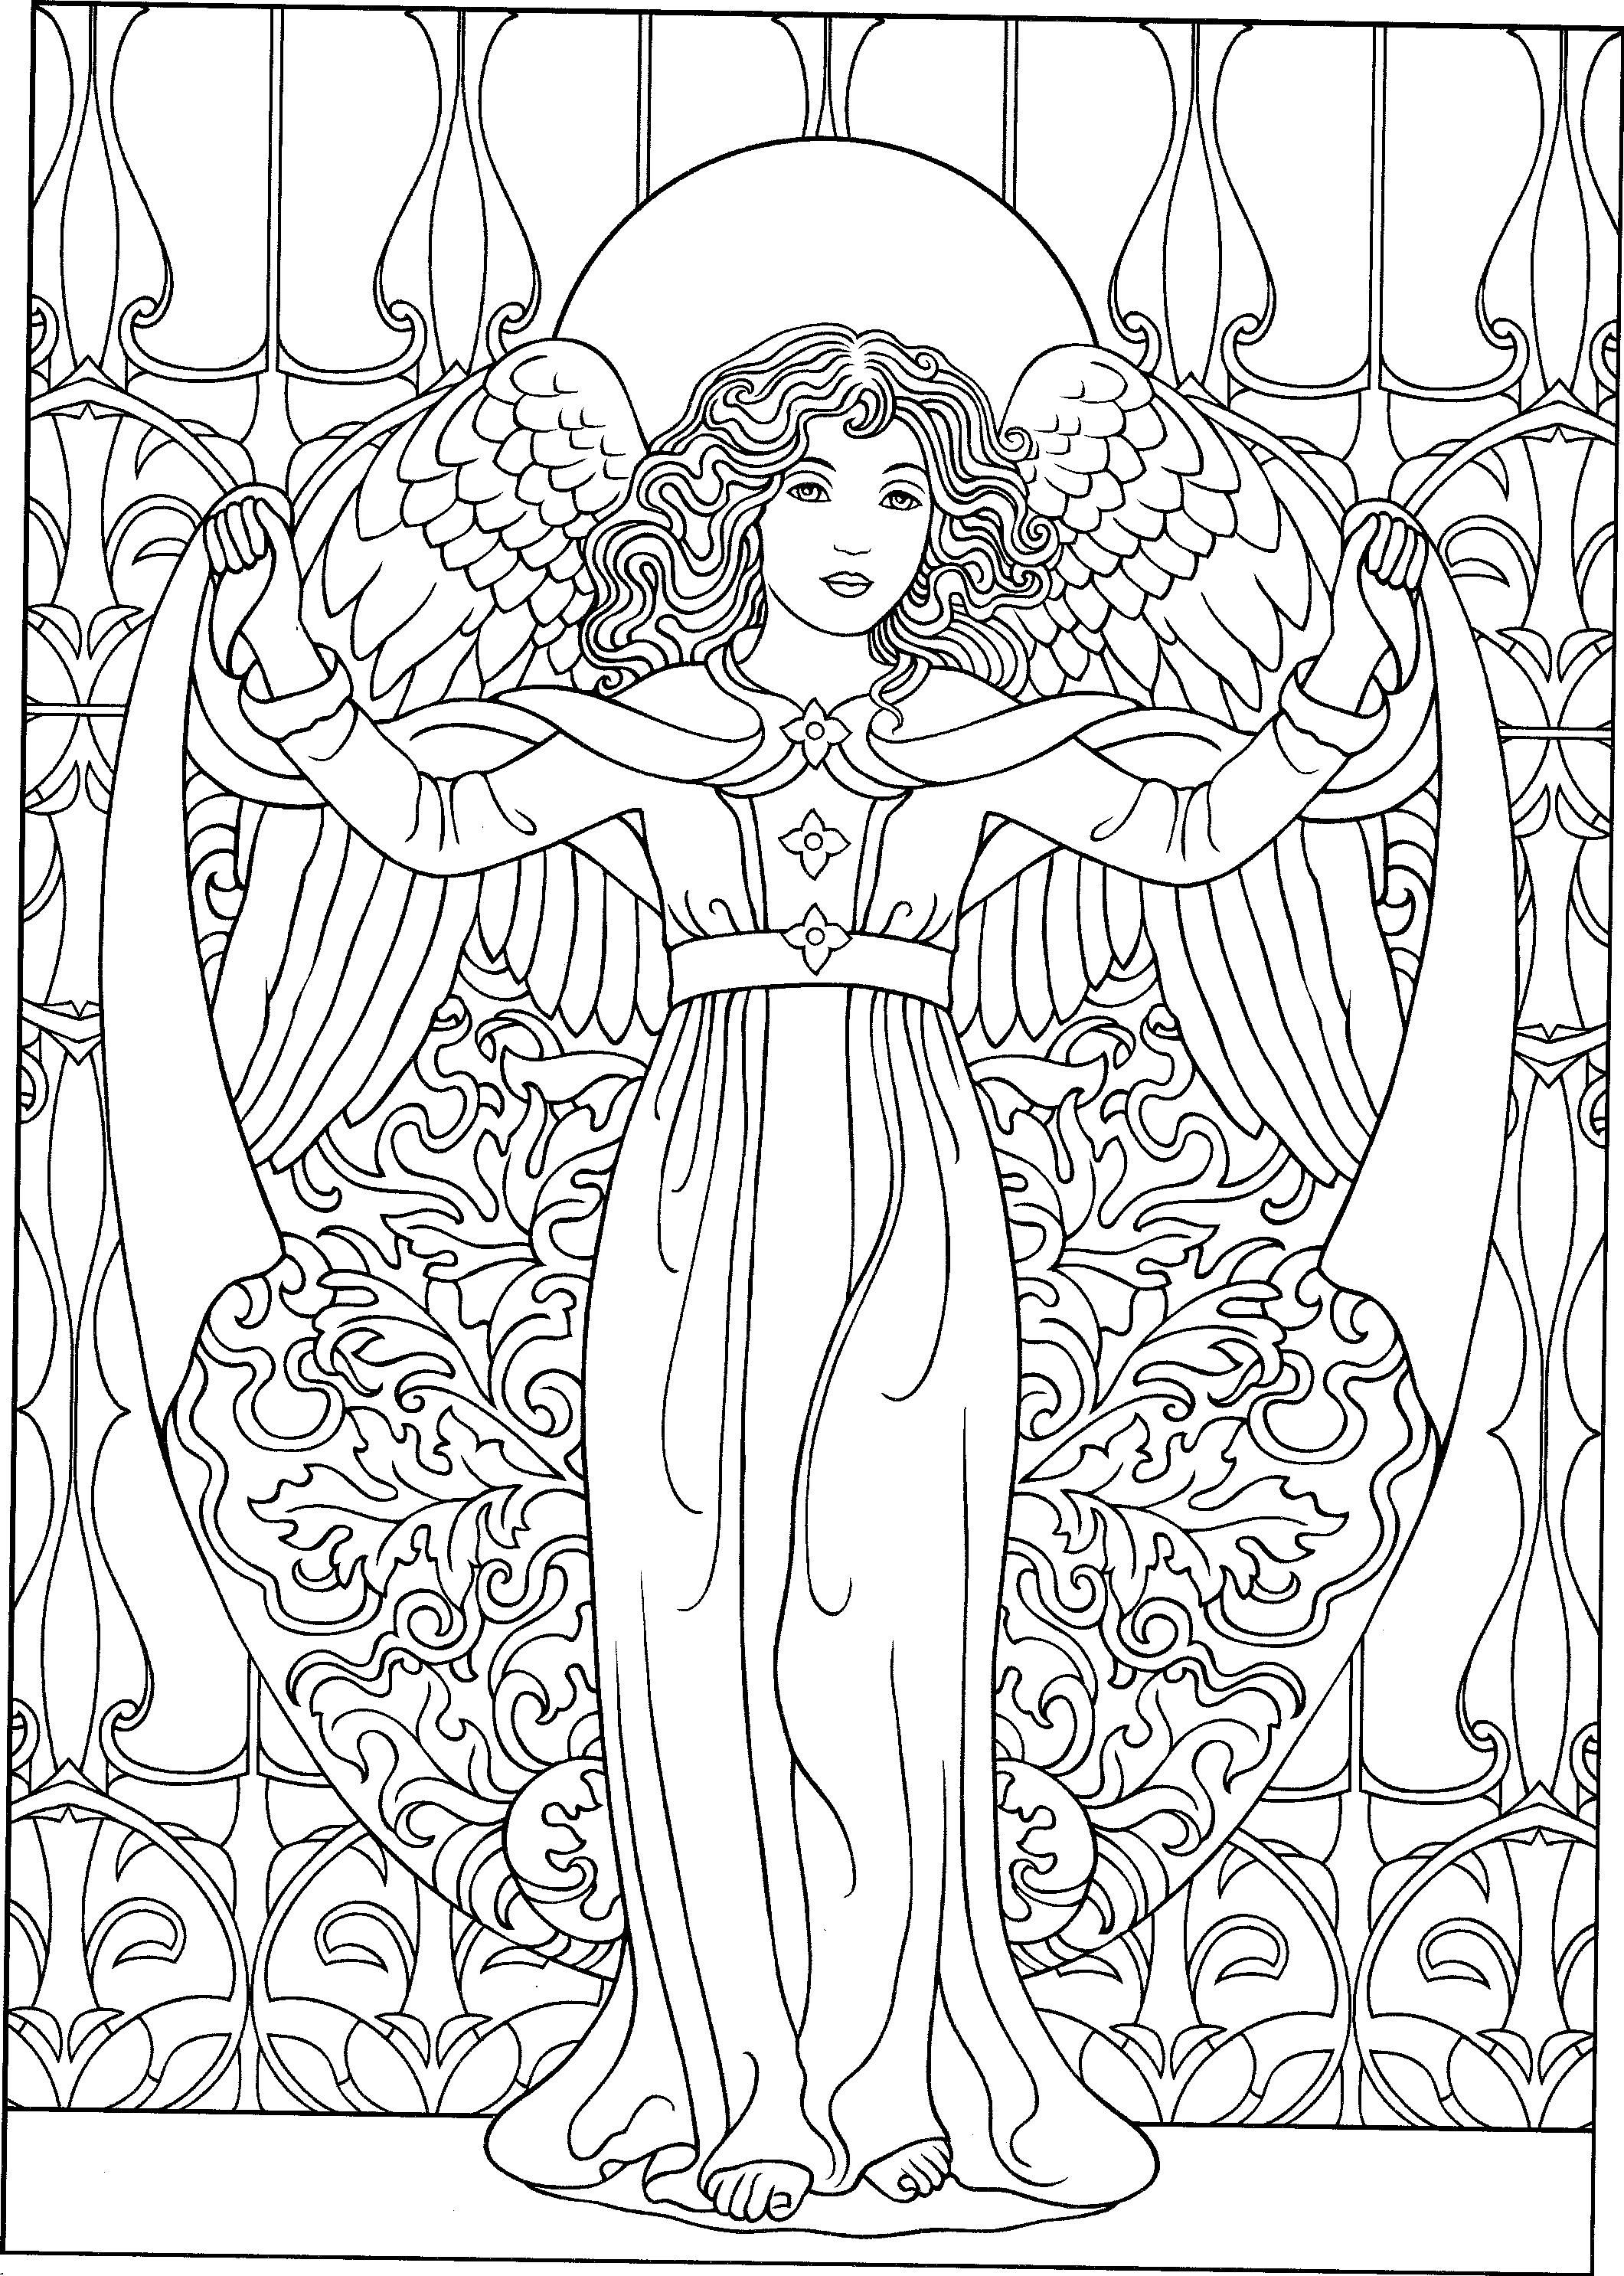 Pin By Jennifer D On Art I Like Angel Coloring Pages Fairy Coloring Pages Abstract Coloring Pages